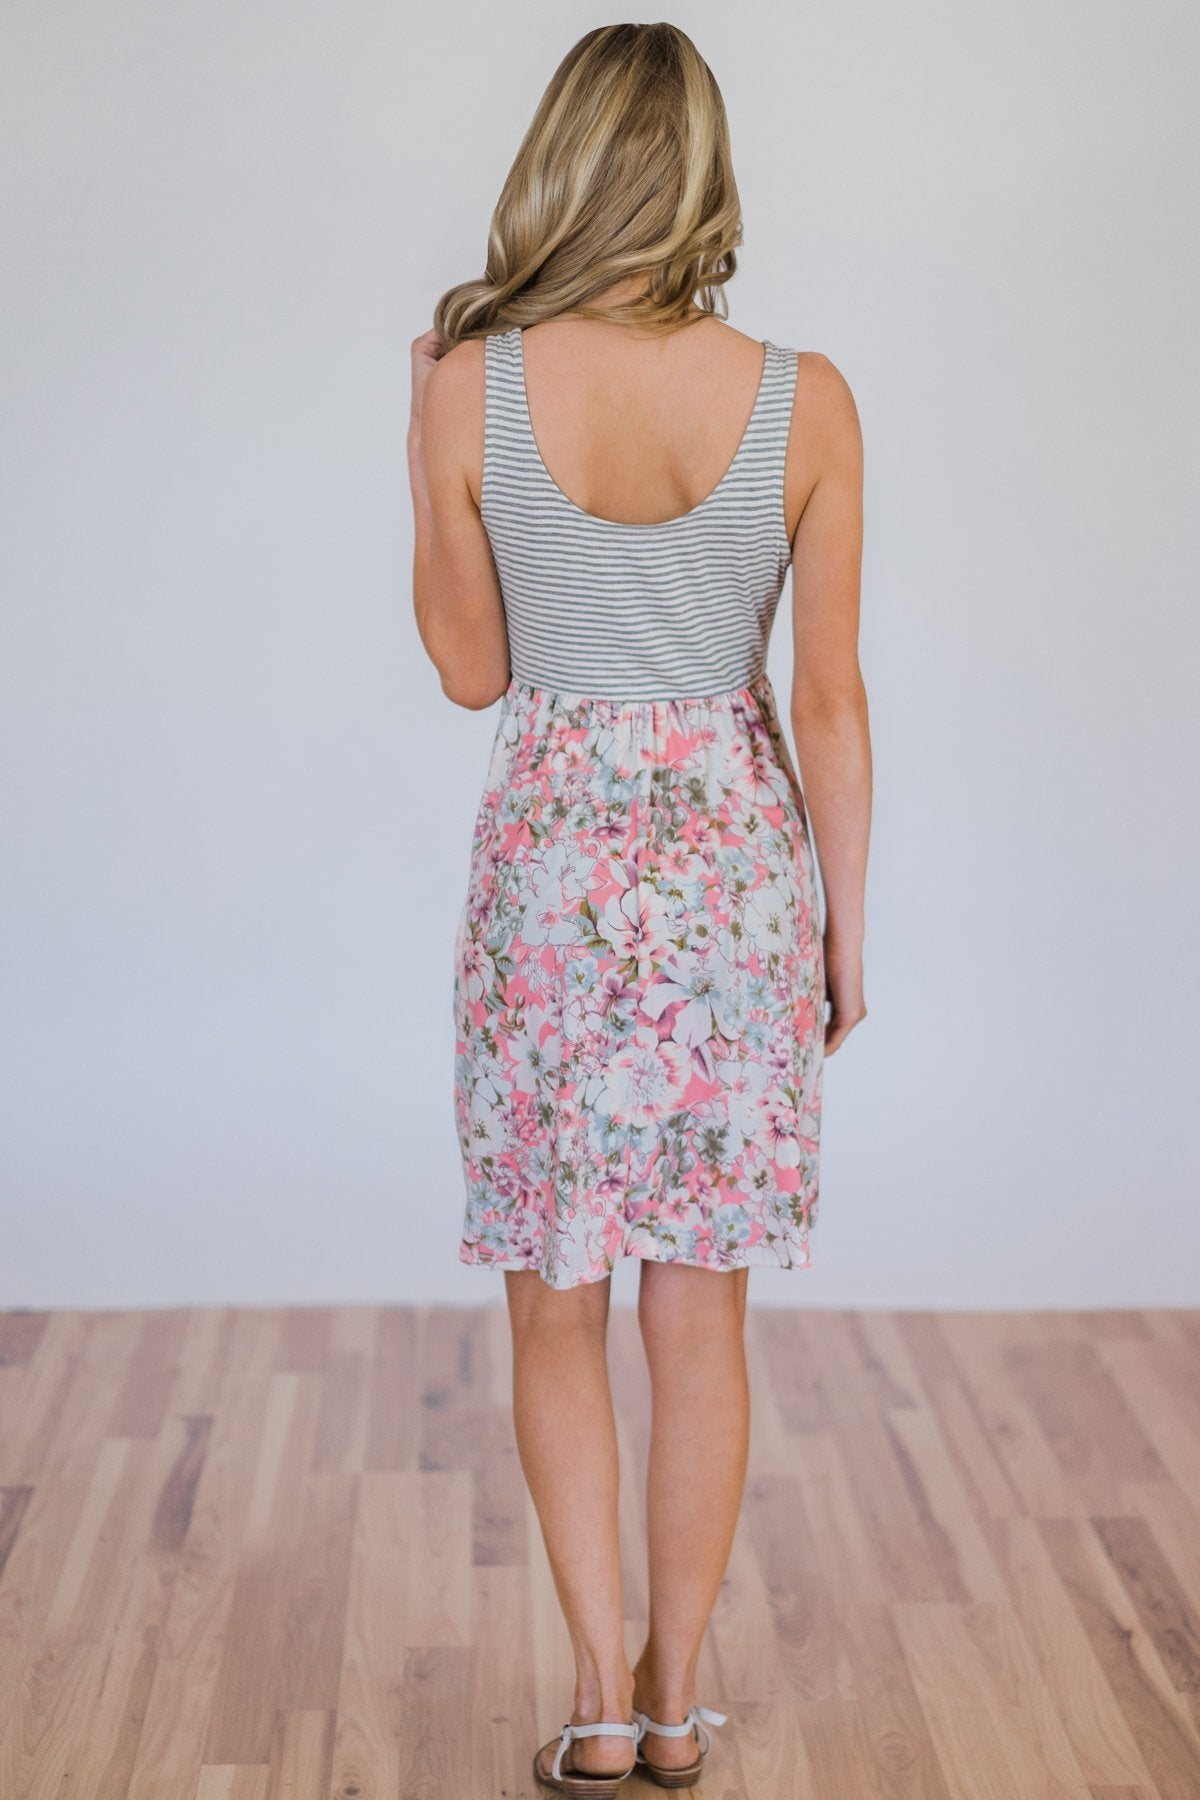 Life in Prints Floral Dress